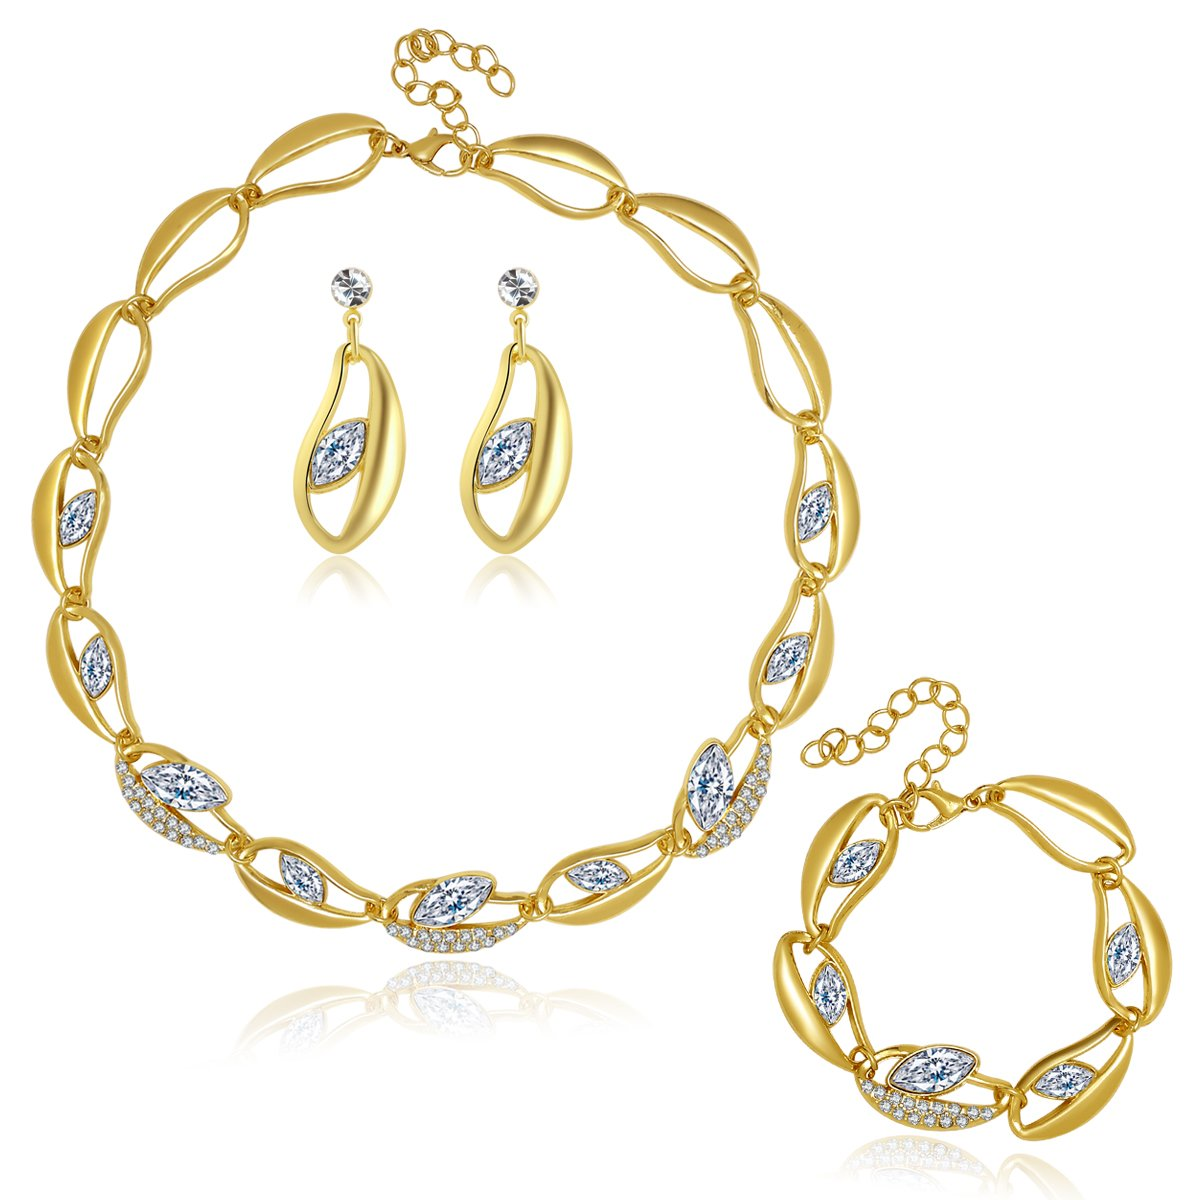 Moochi 18K Gold Plated Oval Beads Chain Necklace Earrings Ring Jewelry Set White